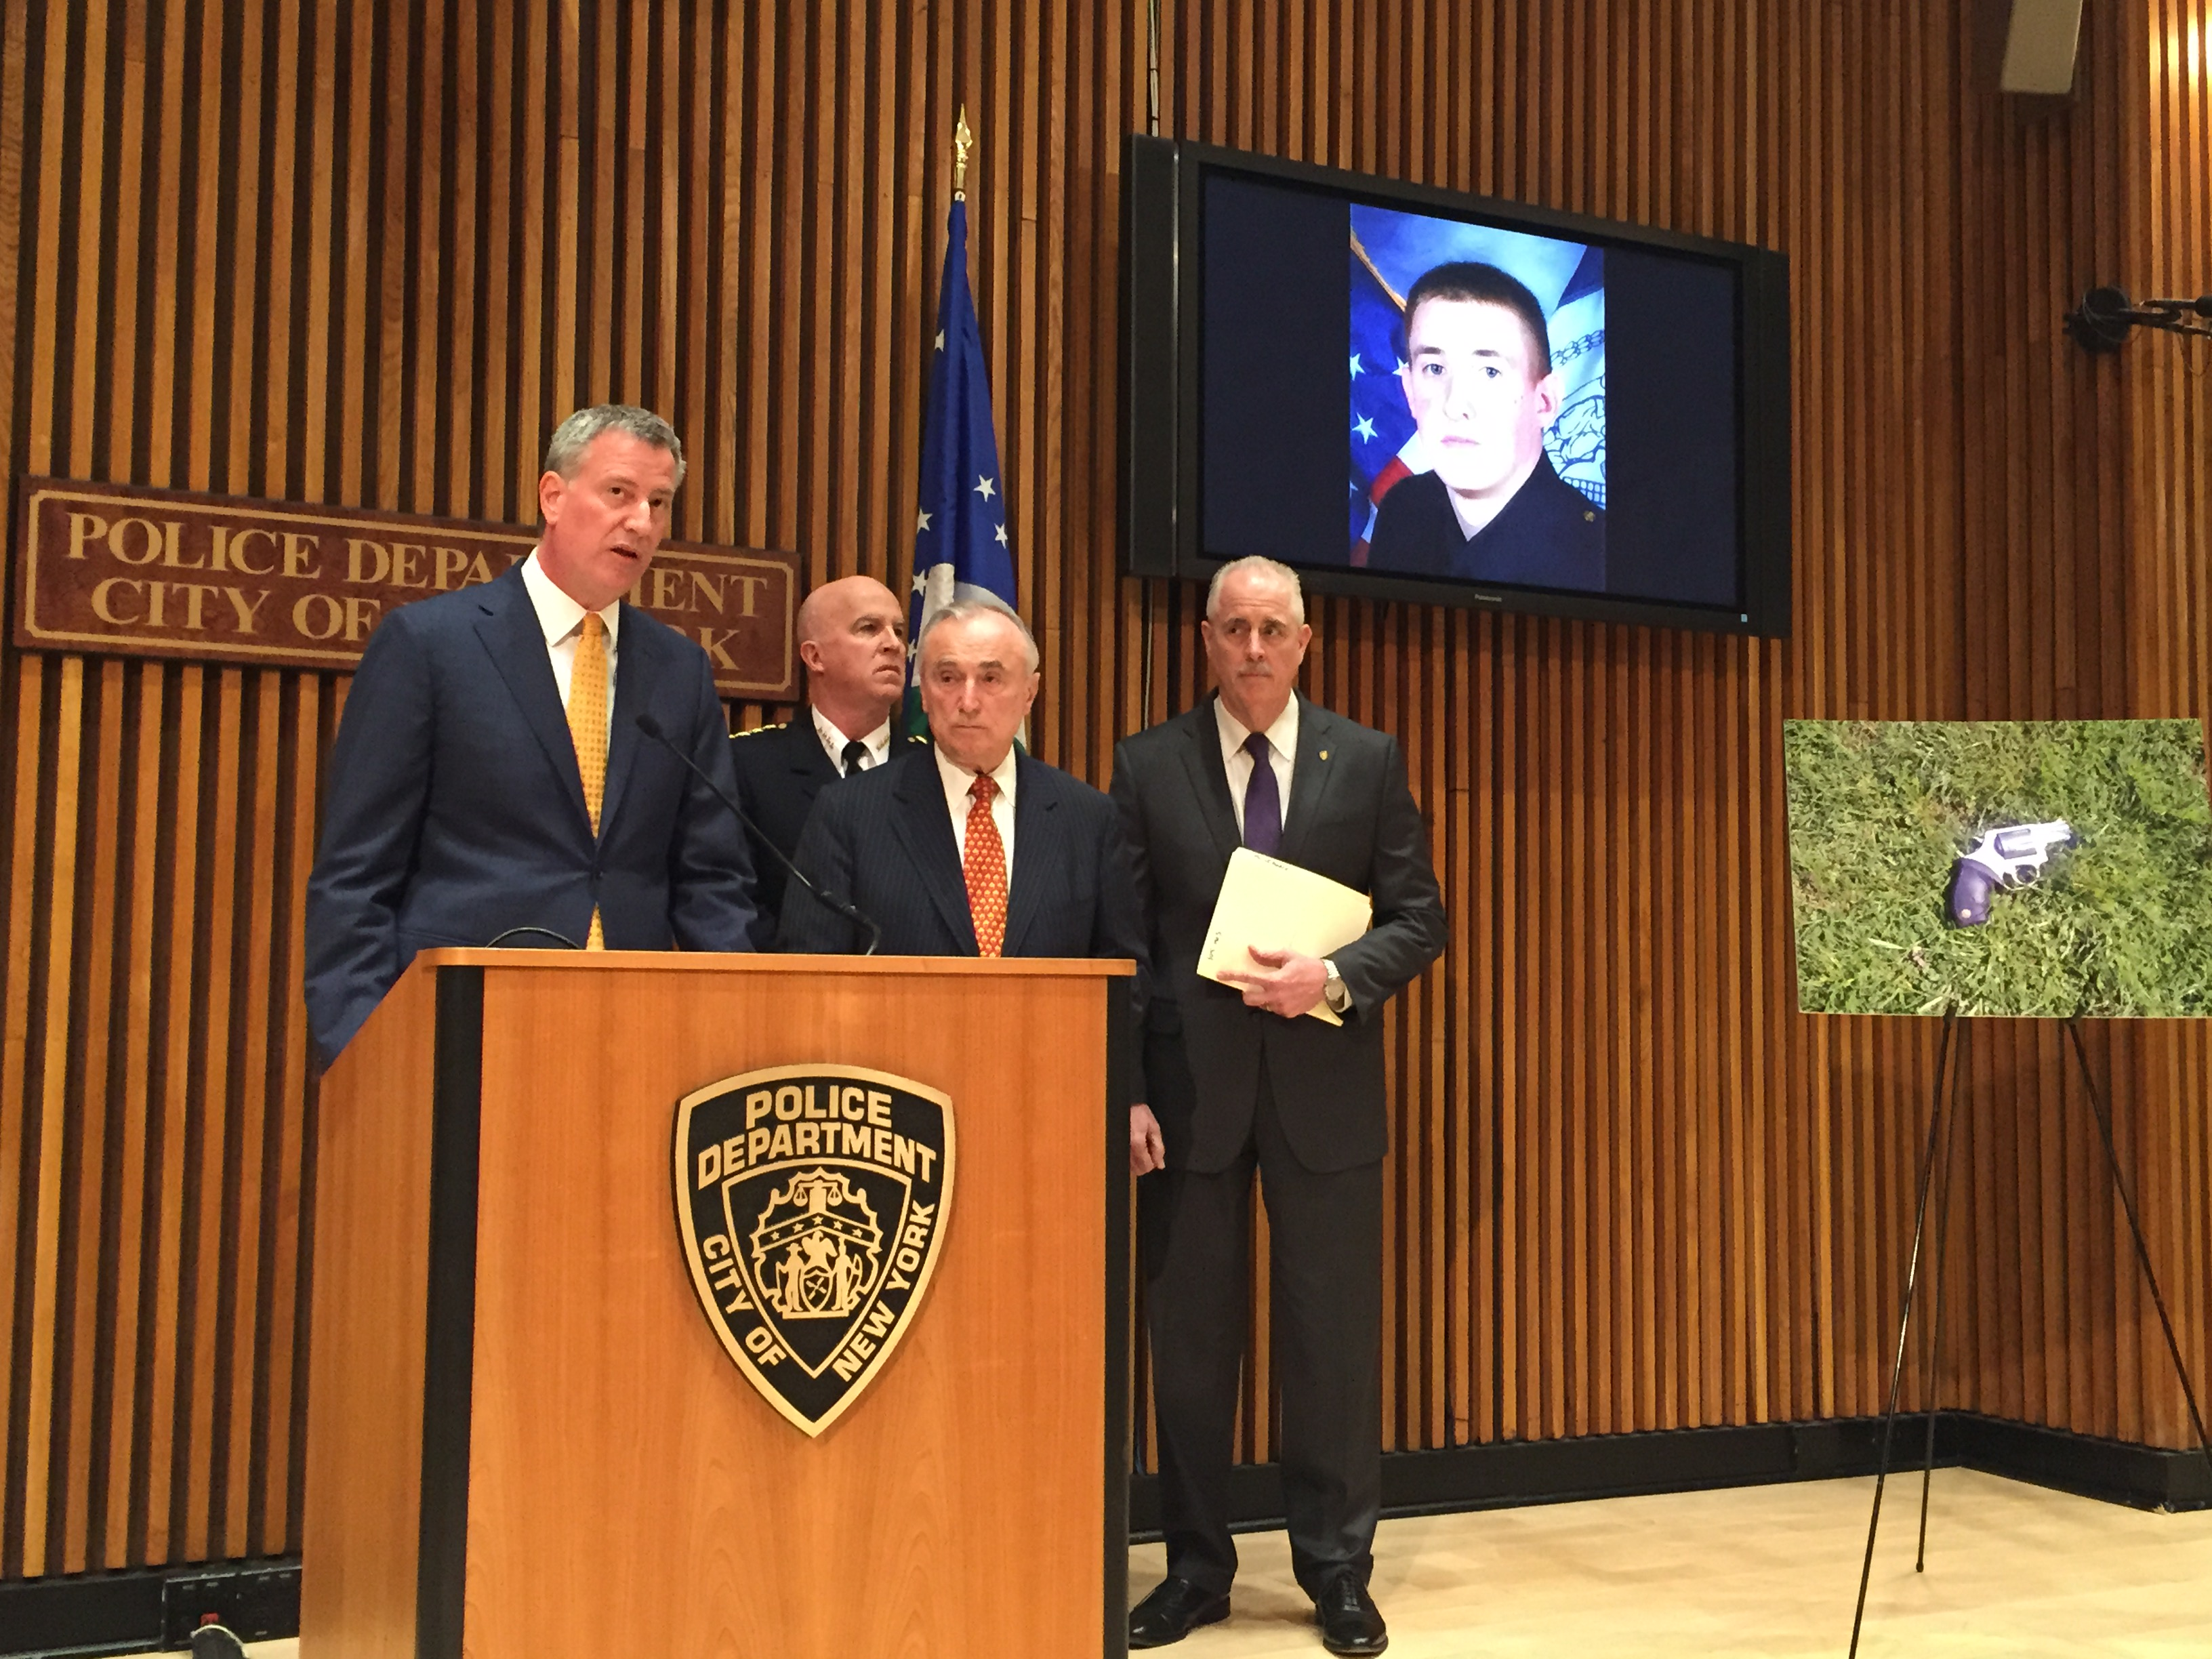 Mayor Bill de Blasio and Police Commissioner Bill Bratton speak about slain Police Officer Brian Moore, picture on the screen behind them. Beside the officials is the gun police say was used to kill the officer. (Photo: Jillian Jorgensen/New York Observer)